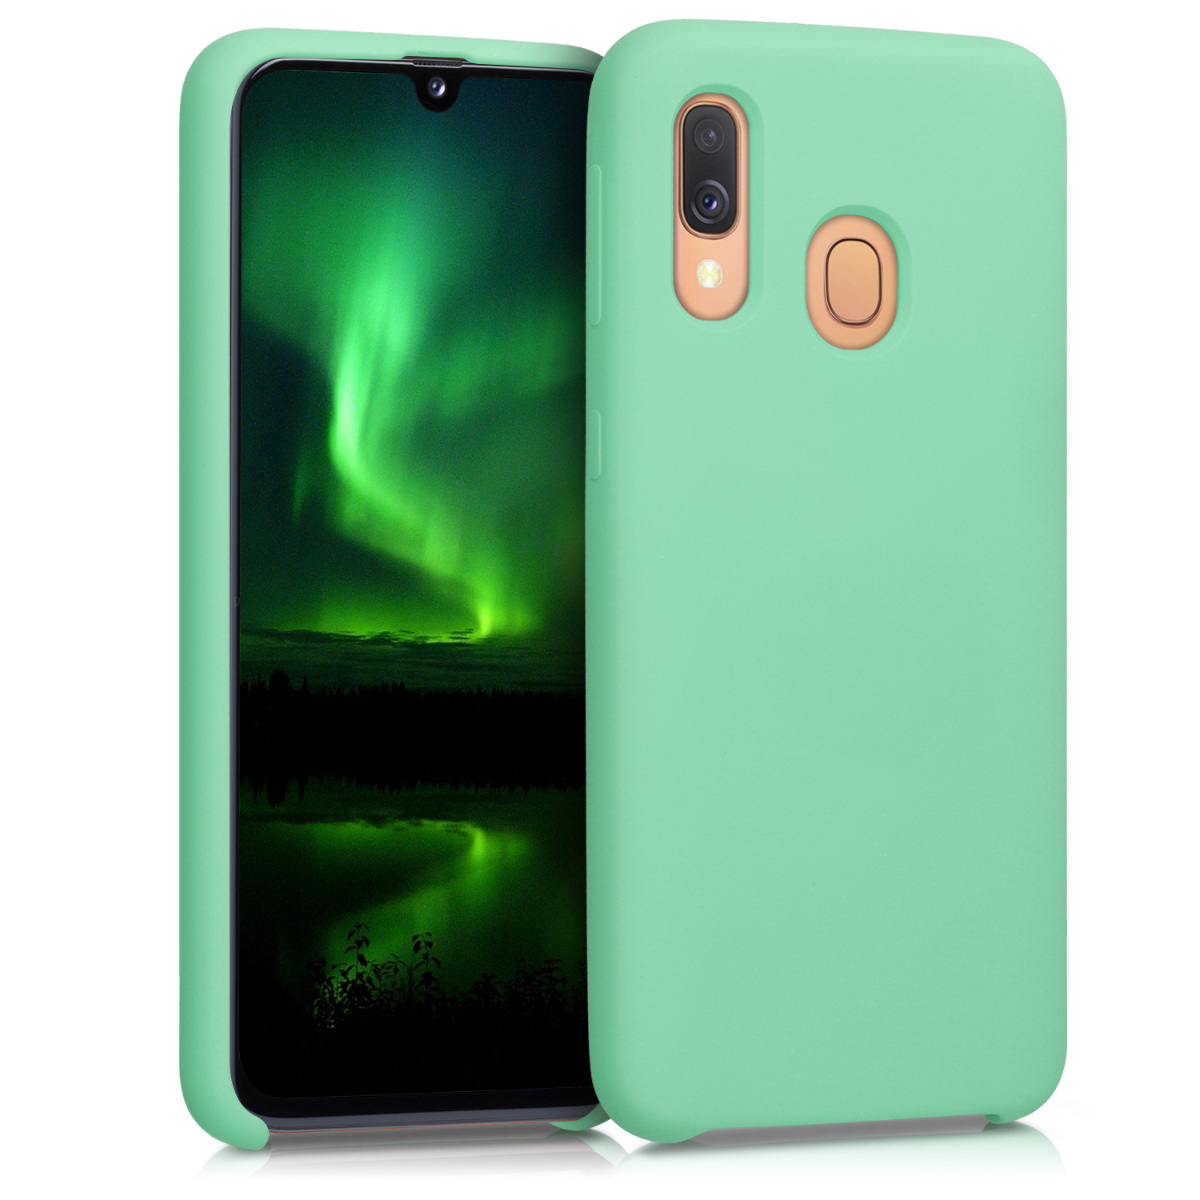 KW Θήκη Σιλικόνης Samsung Galaxy A40 - Soft Flexible Rubber - Peppermint Green (49091.147)